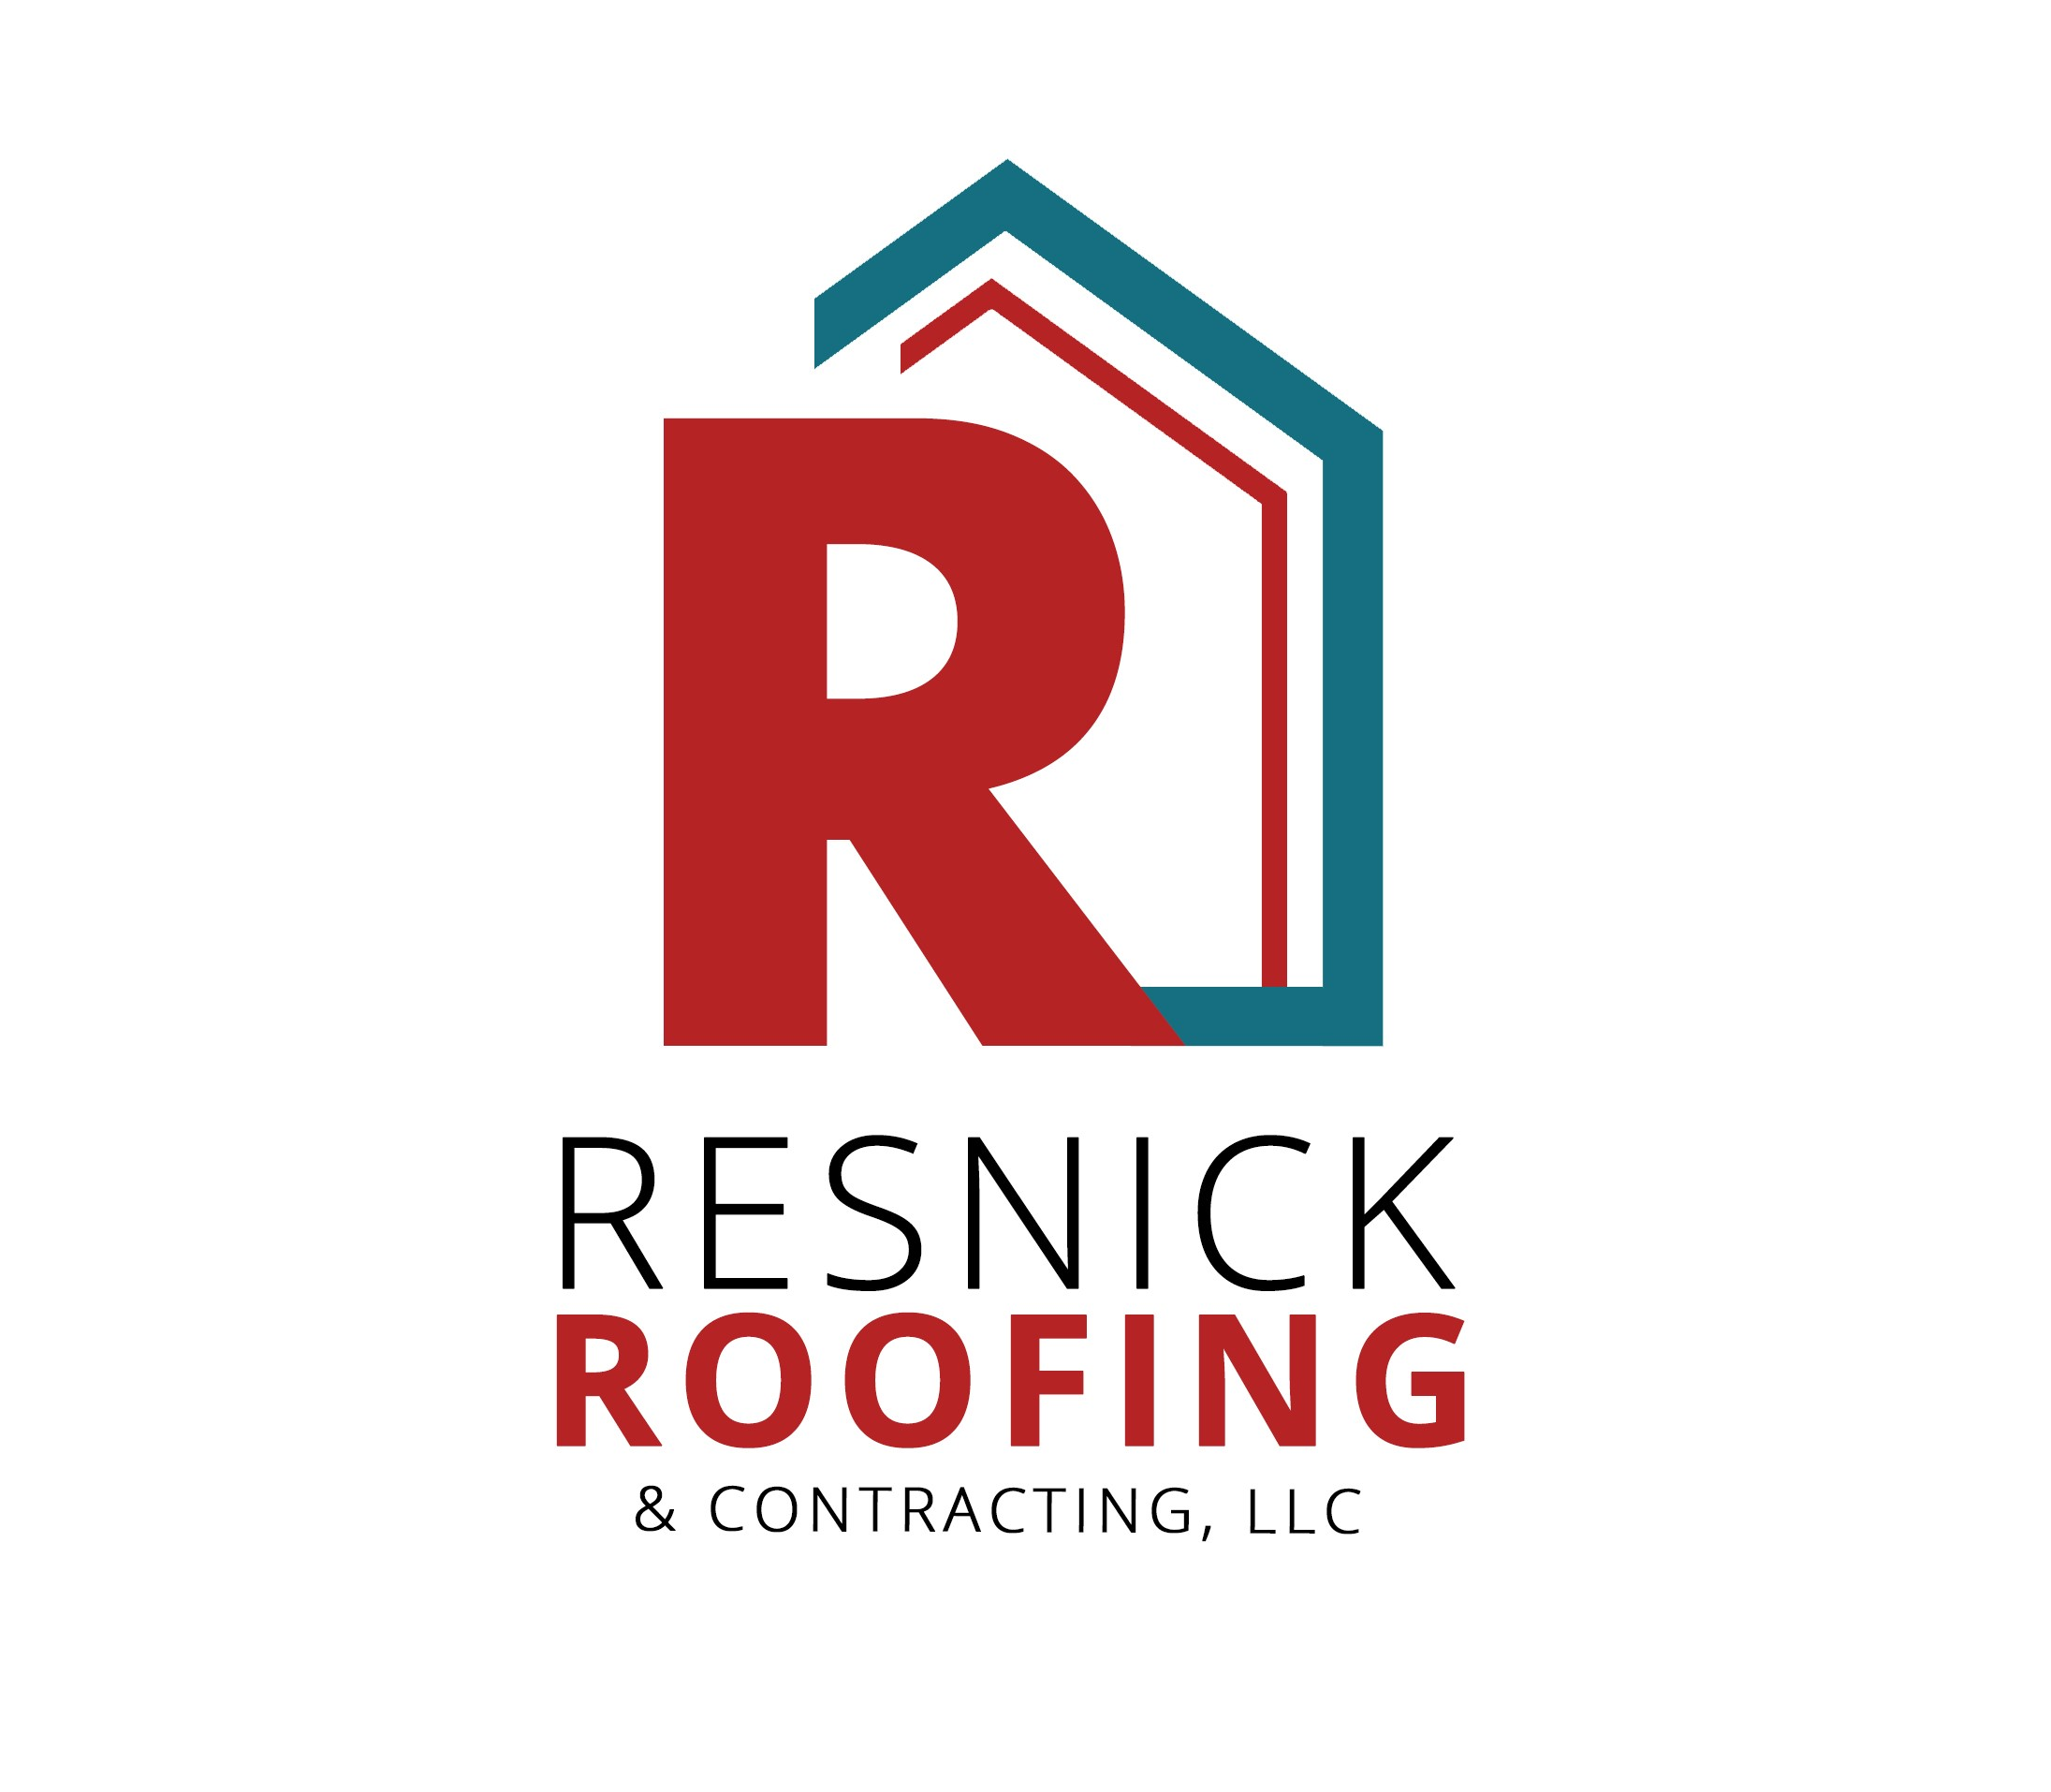 Resnick Roofing & Contracting, LLC  logo